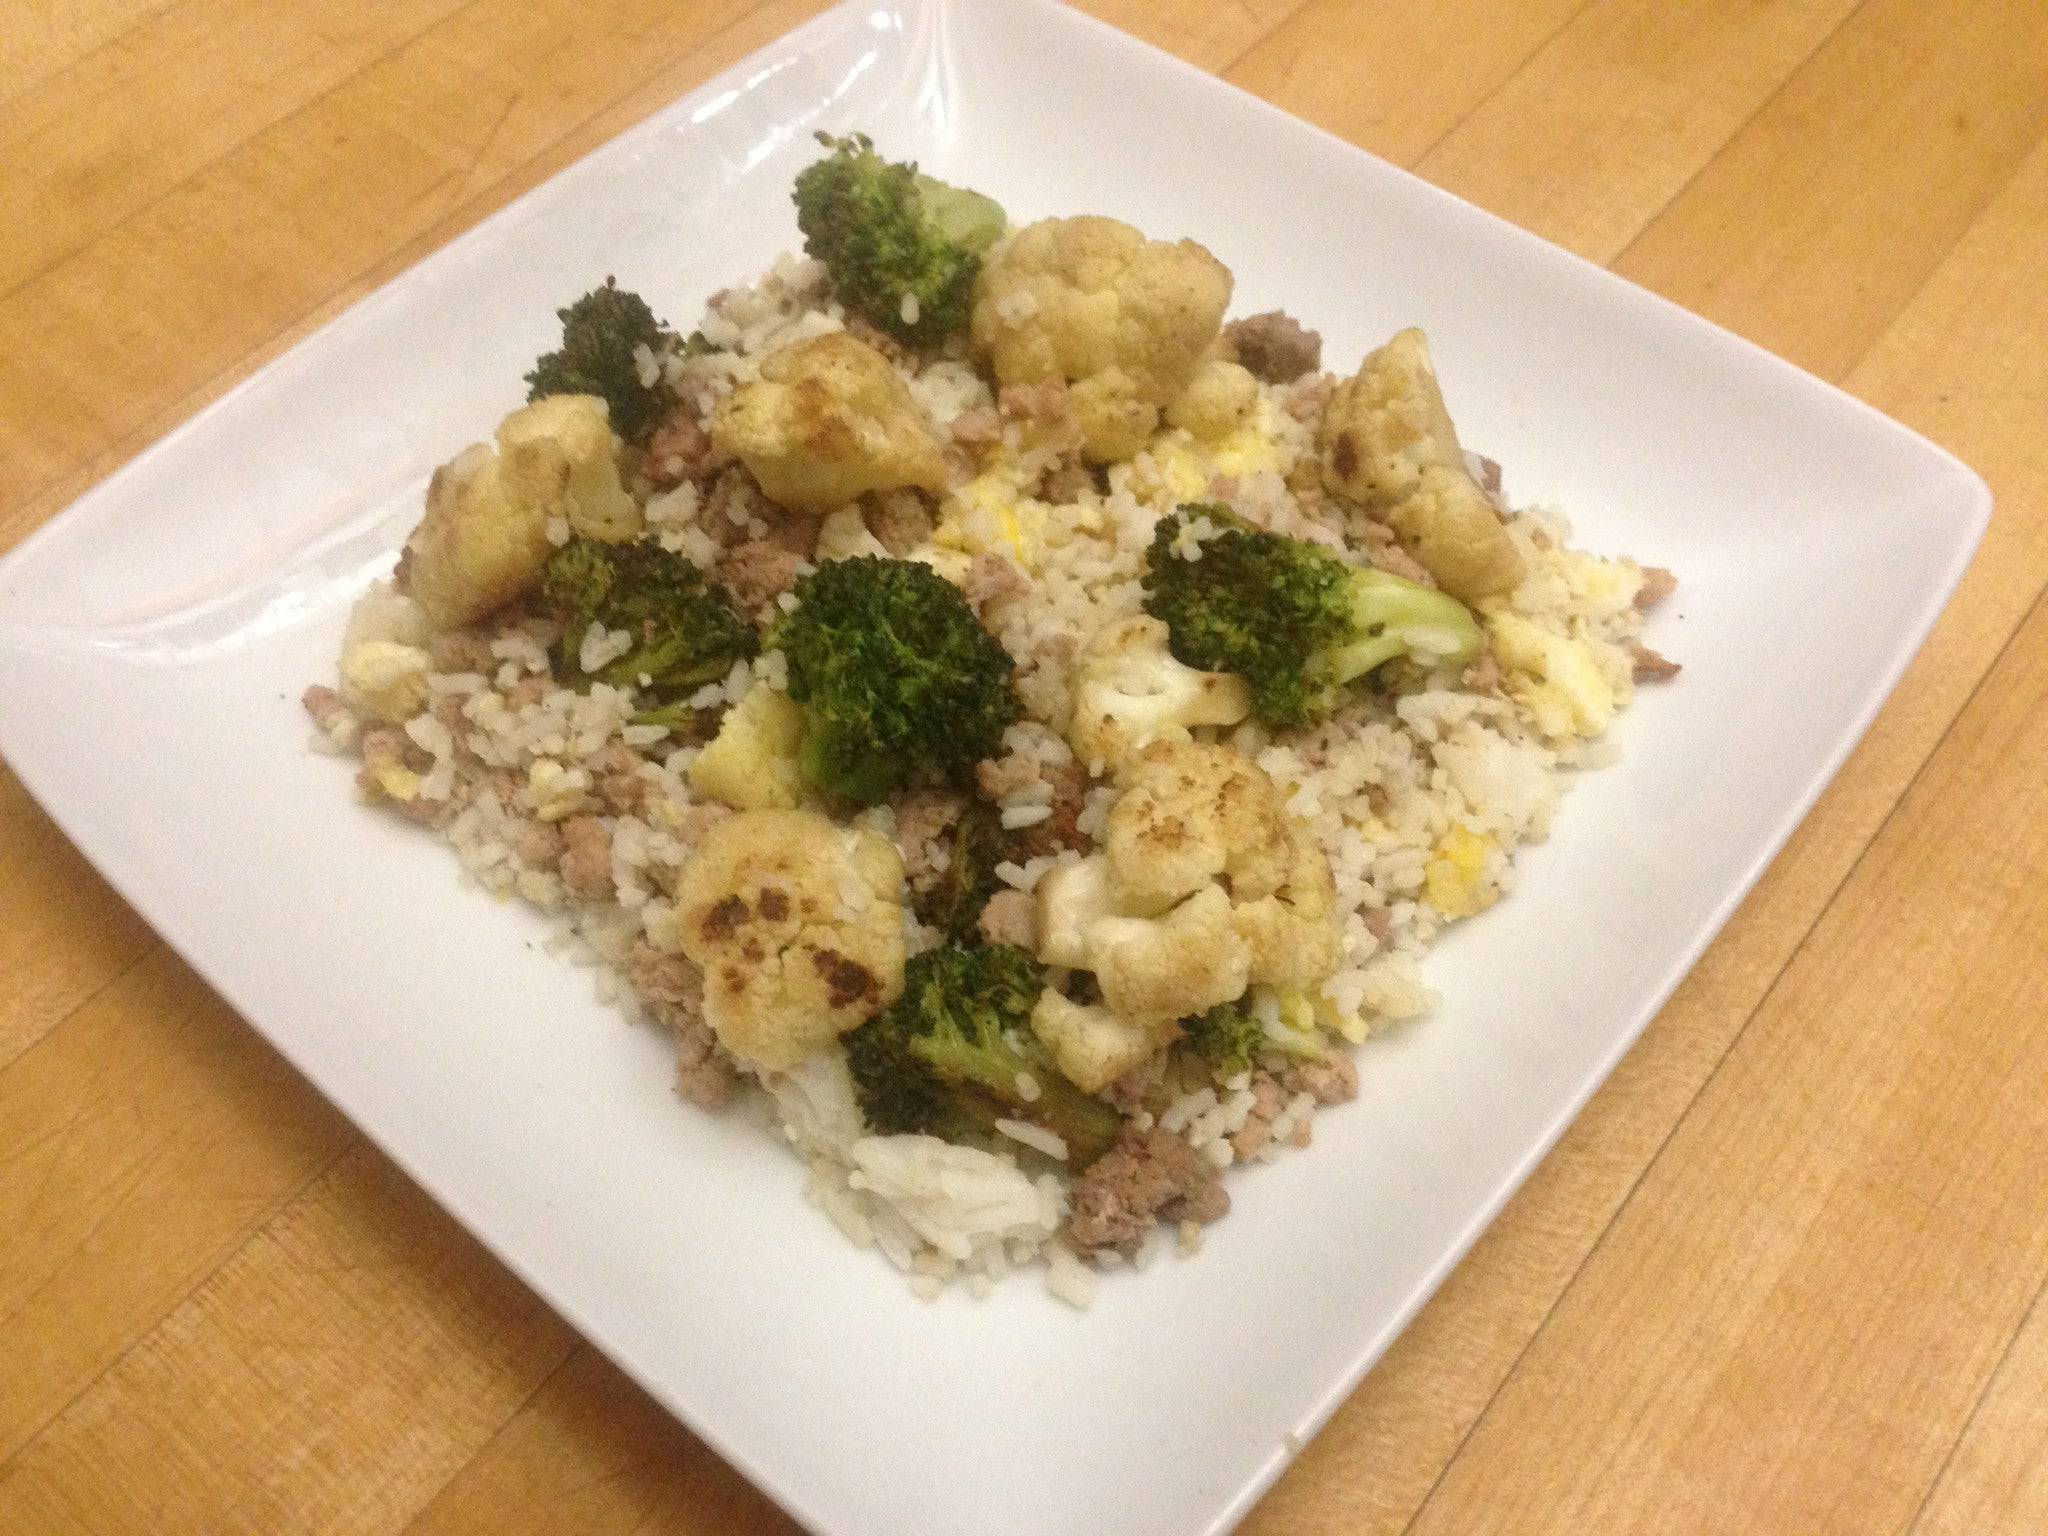 egg-&-chicken-fried-rice-with-broccoli-&-cauliflower-skillit-simple-easy-recipes-dinner-skillet